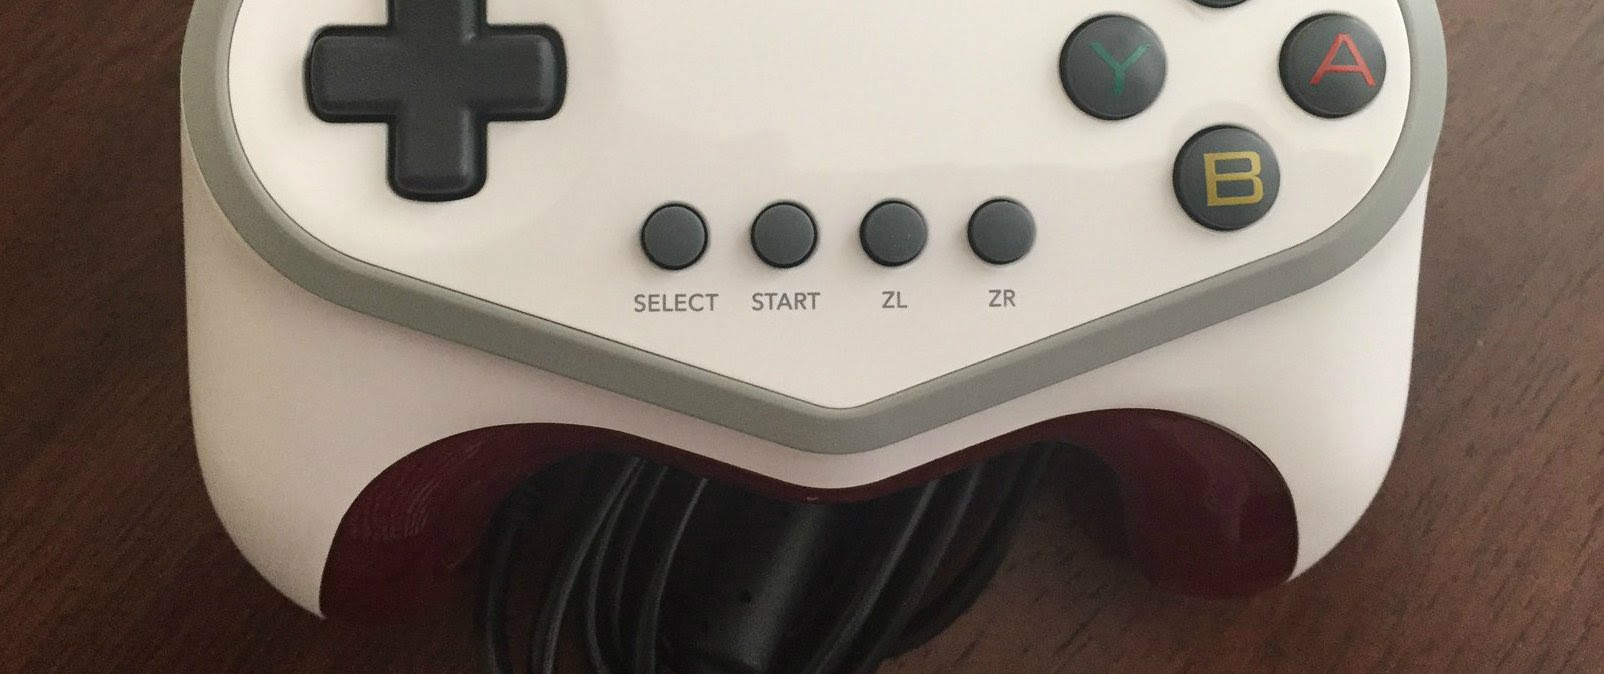 Pokken Tournament's special Wii U controller will allegedly work on Switch screenshot